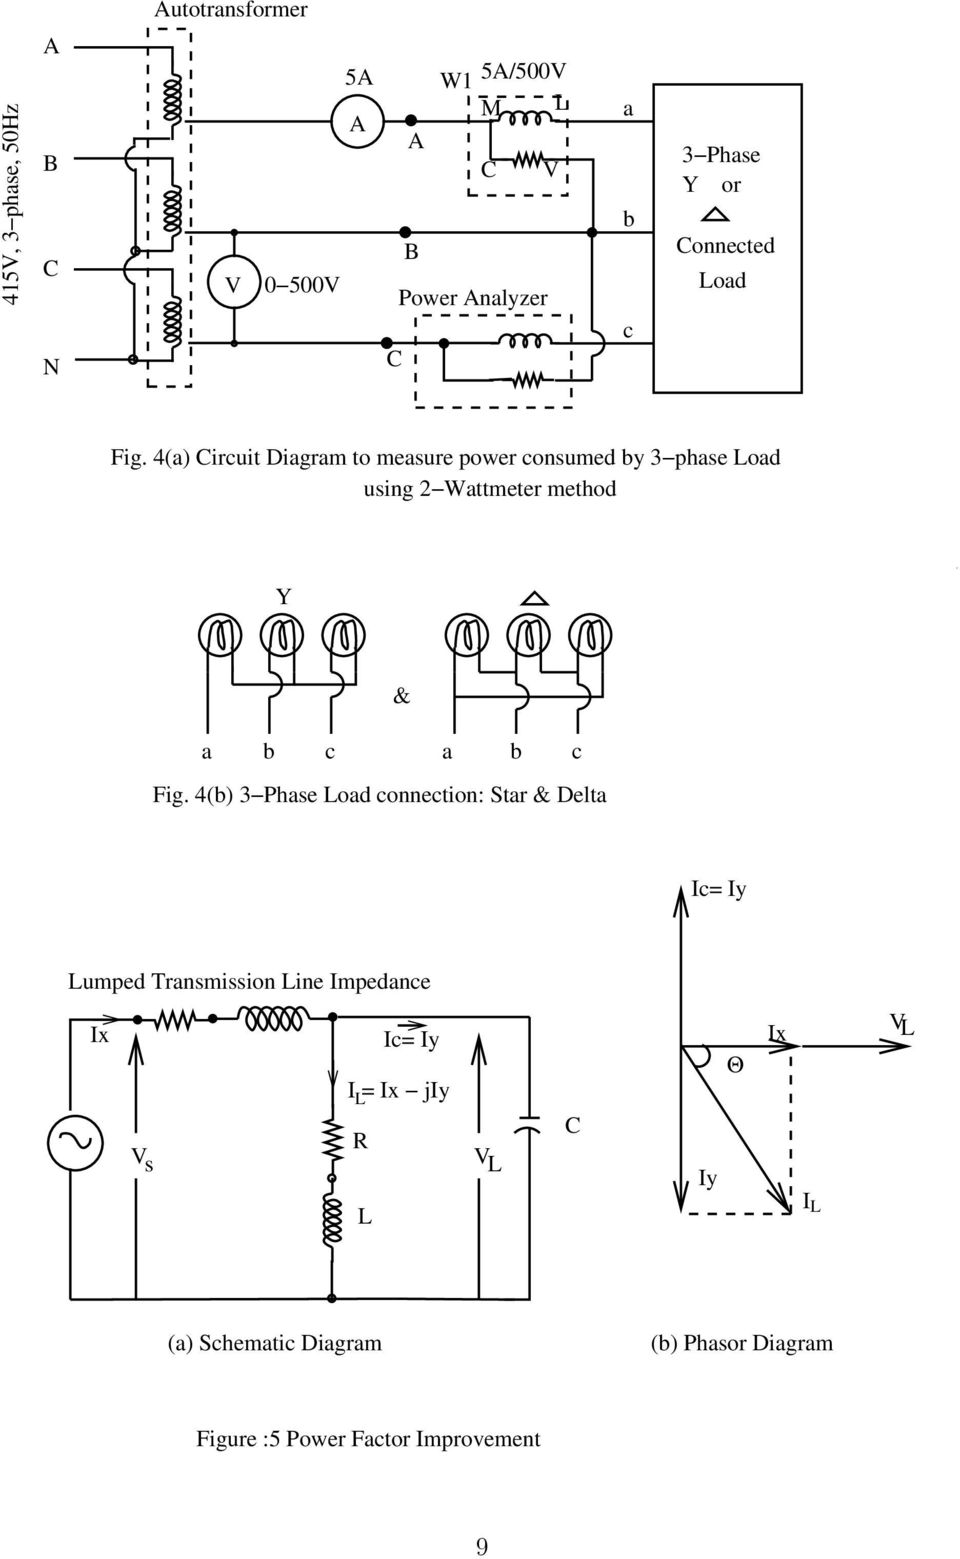 medium resolution of 4 a circuit diagram to measure power consumed by 3 phase load using wattmeter